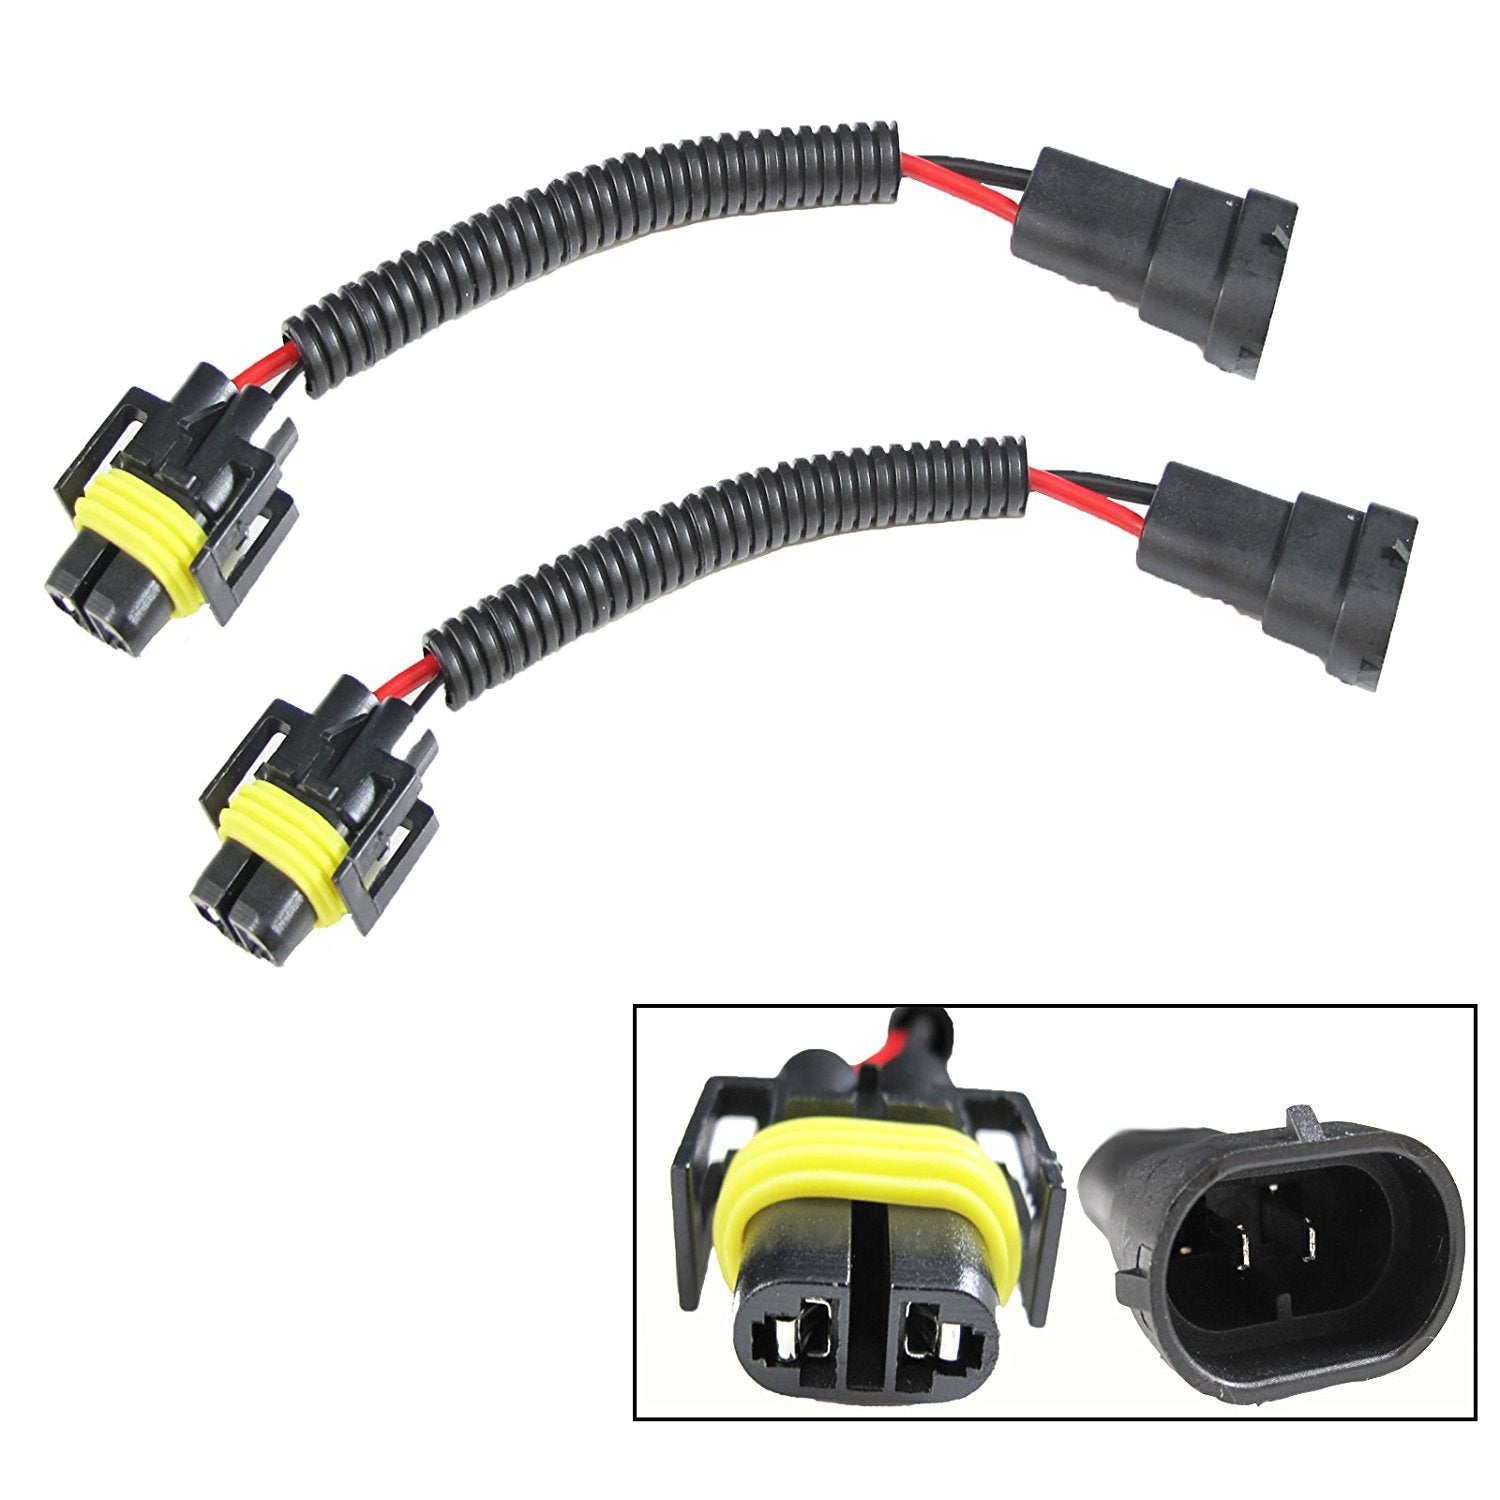 H11 H8 H9 Extension Wiring Harness Sockets Wire For Headlights Fog Automotive Headlight Lights